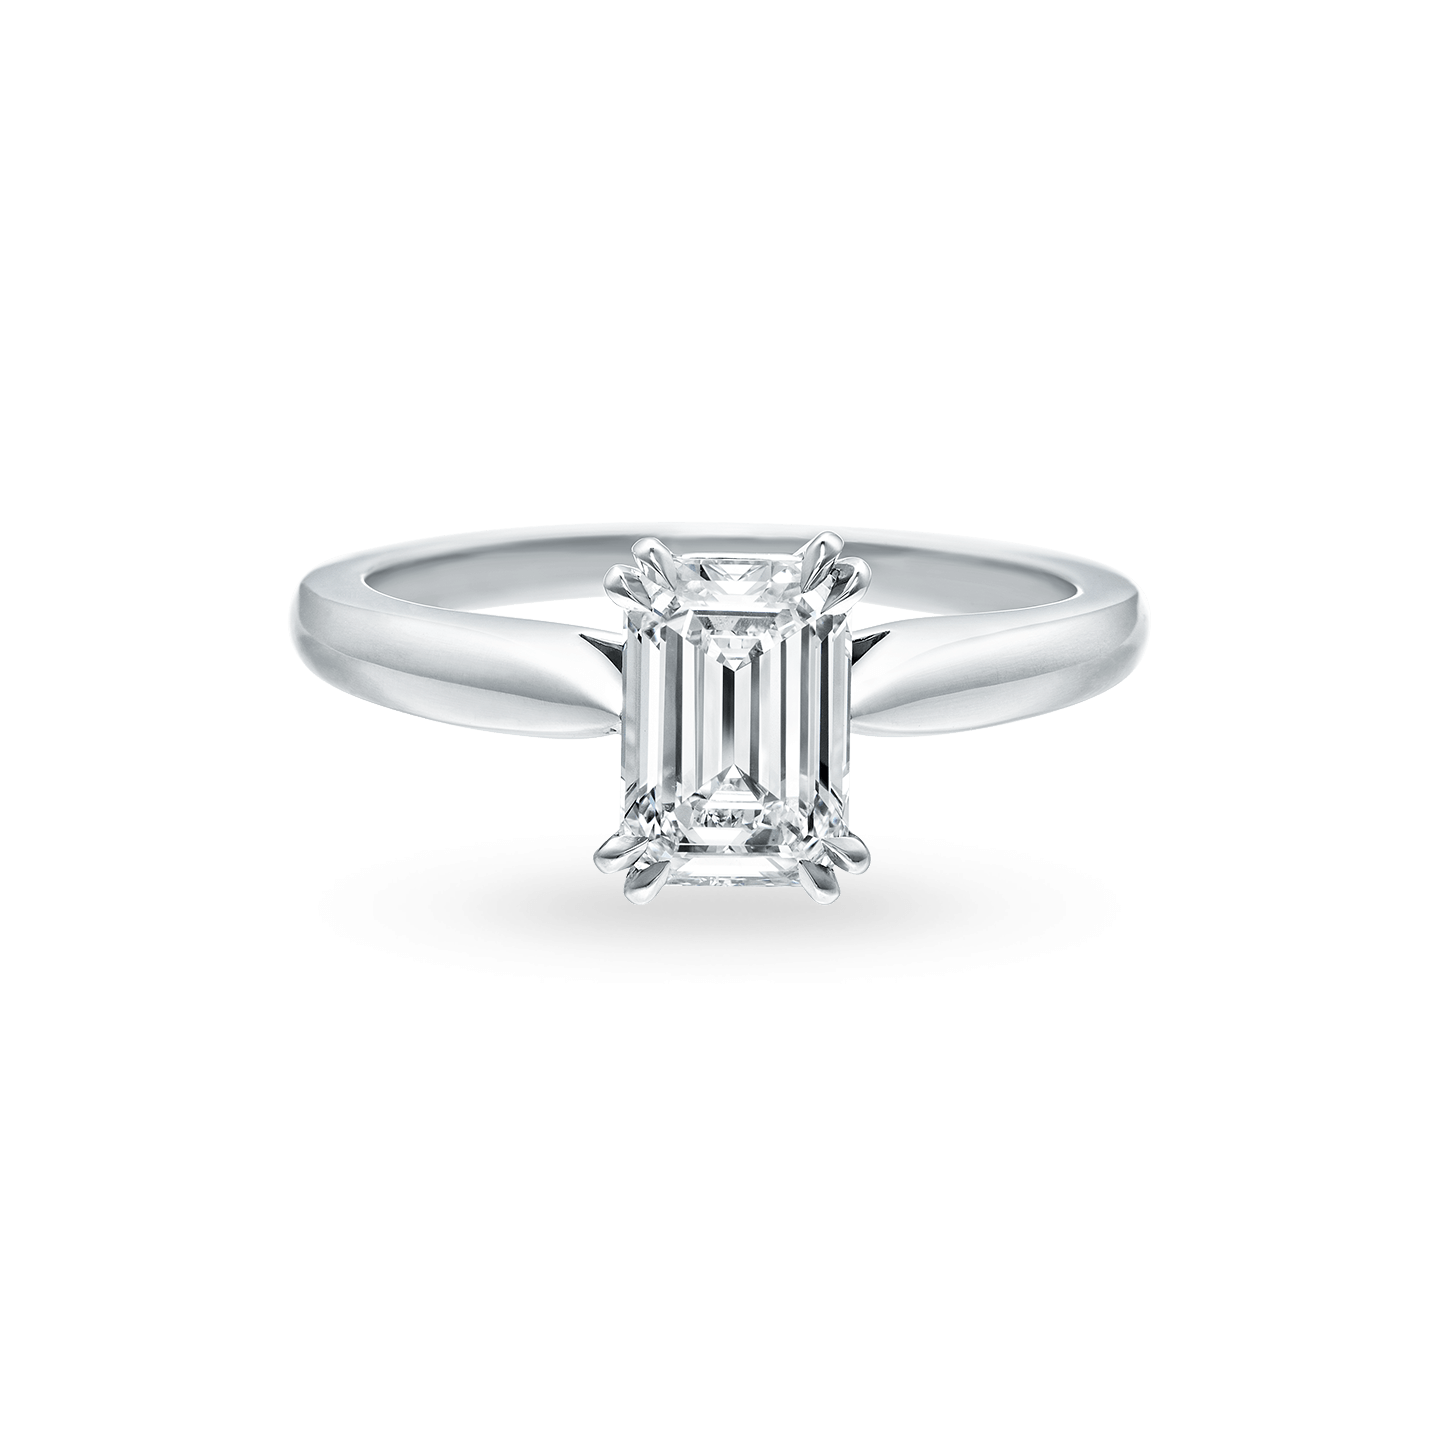 Solitaire Emerald-Cut Engagement Ring, Product Image 1